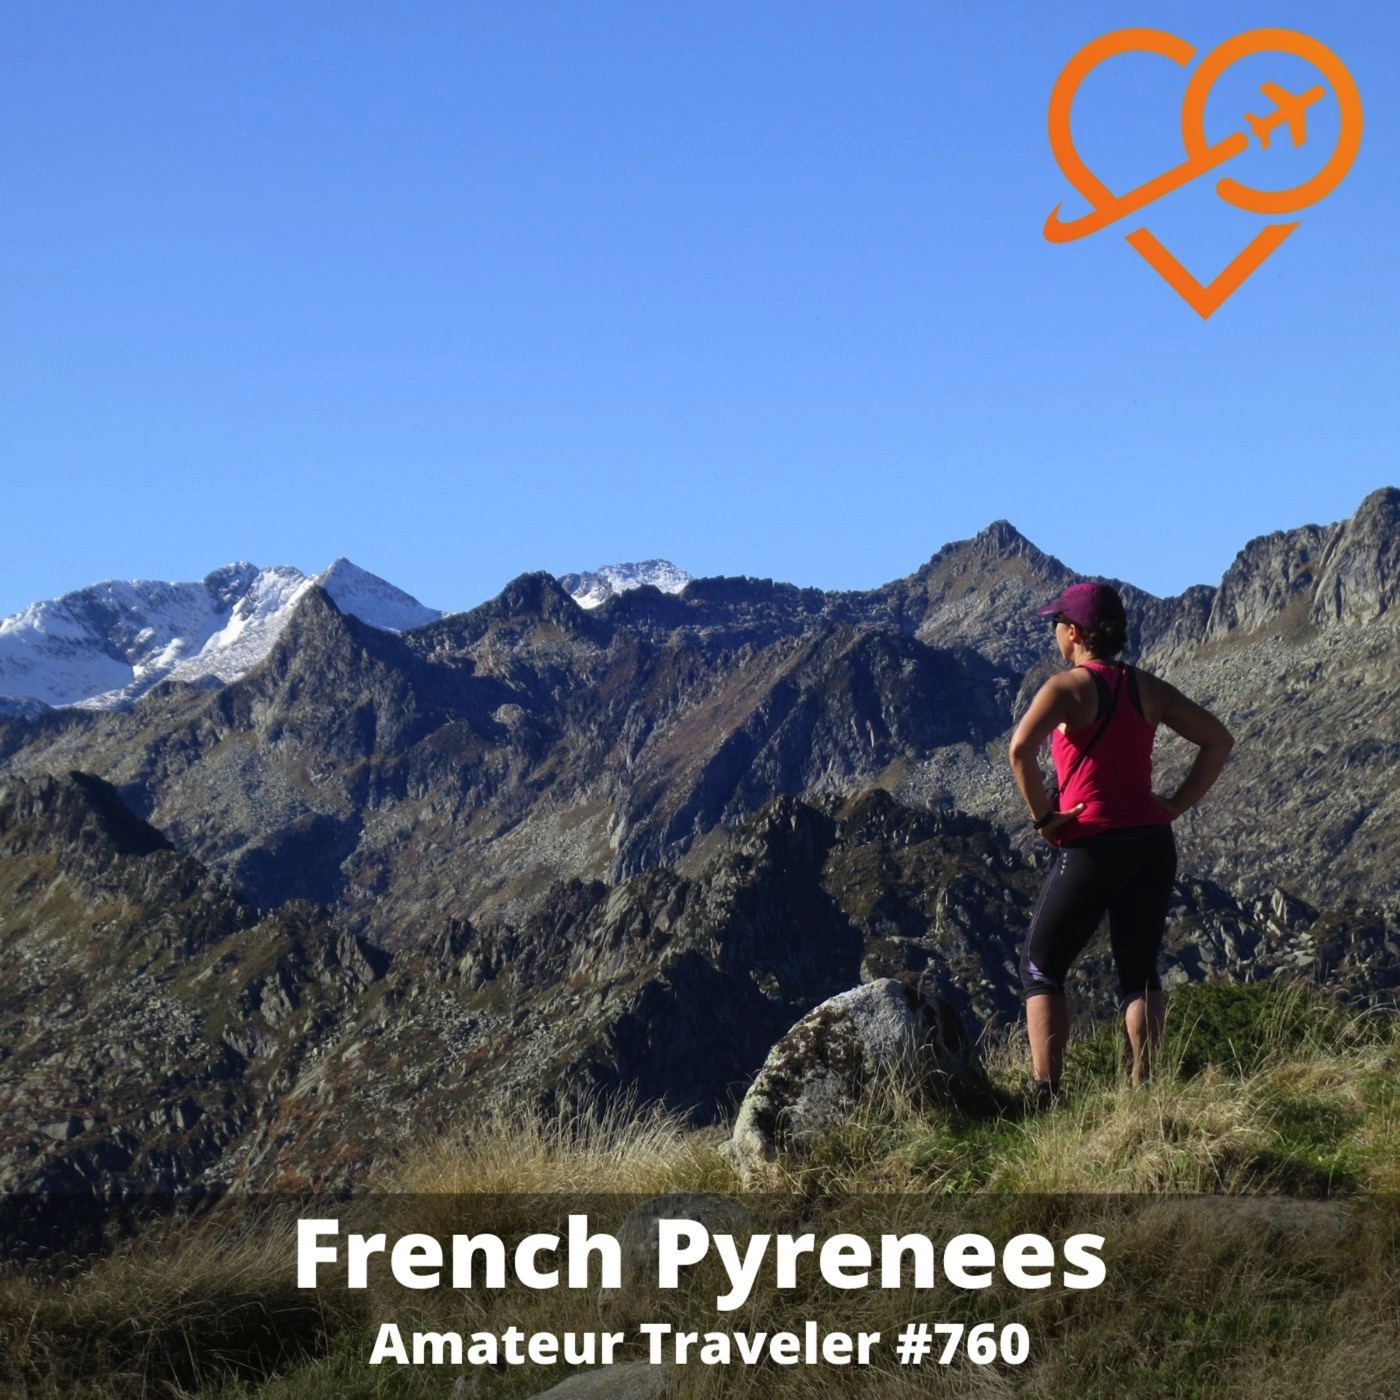 AT#760 - Travel to the French Pyrenees